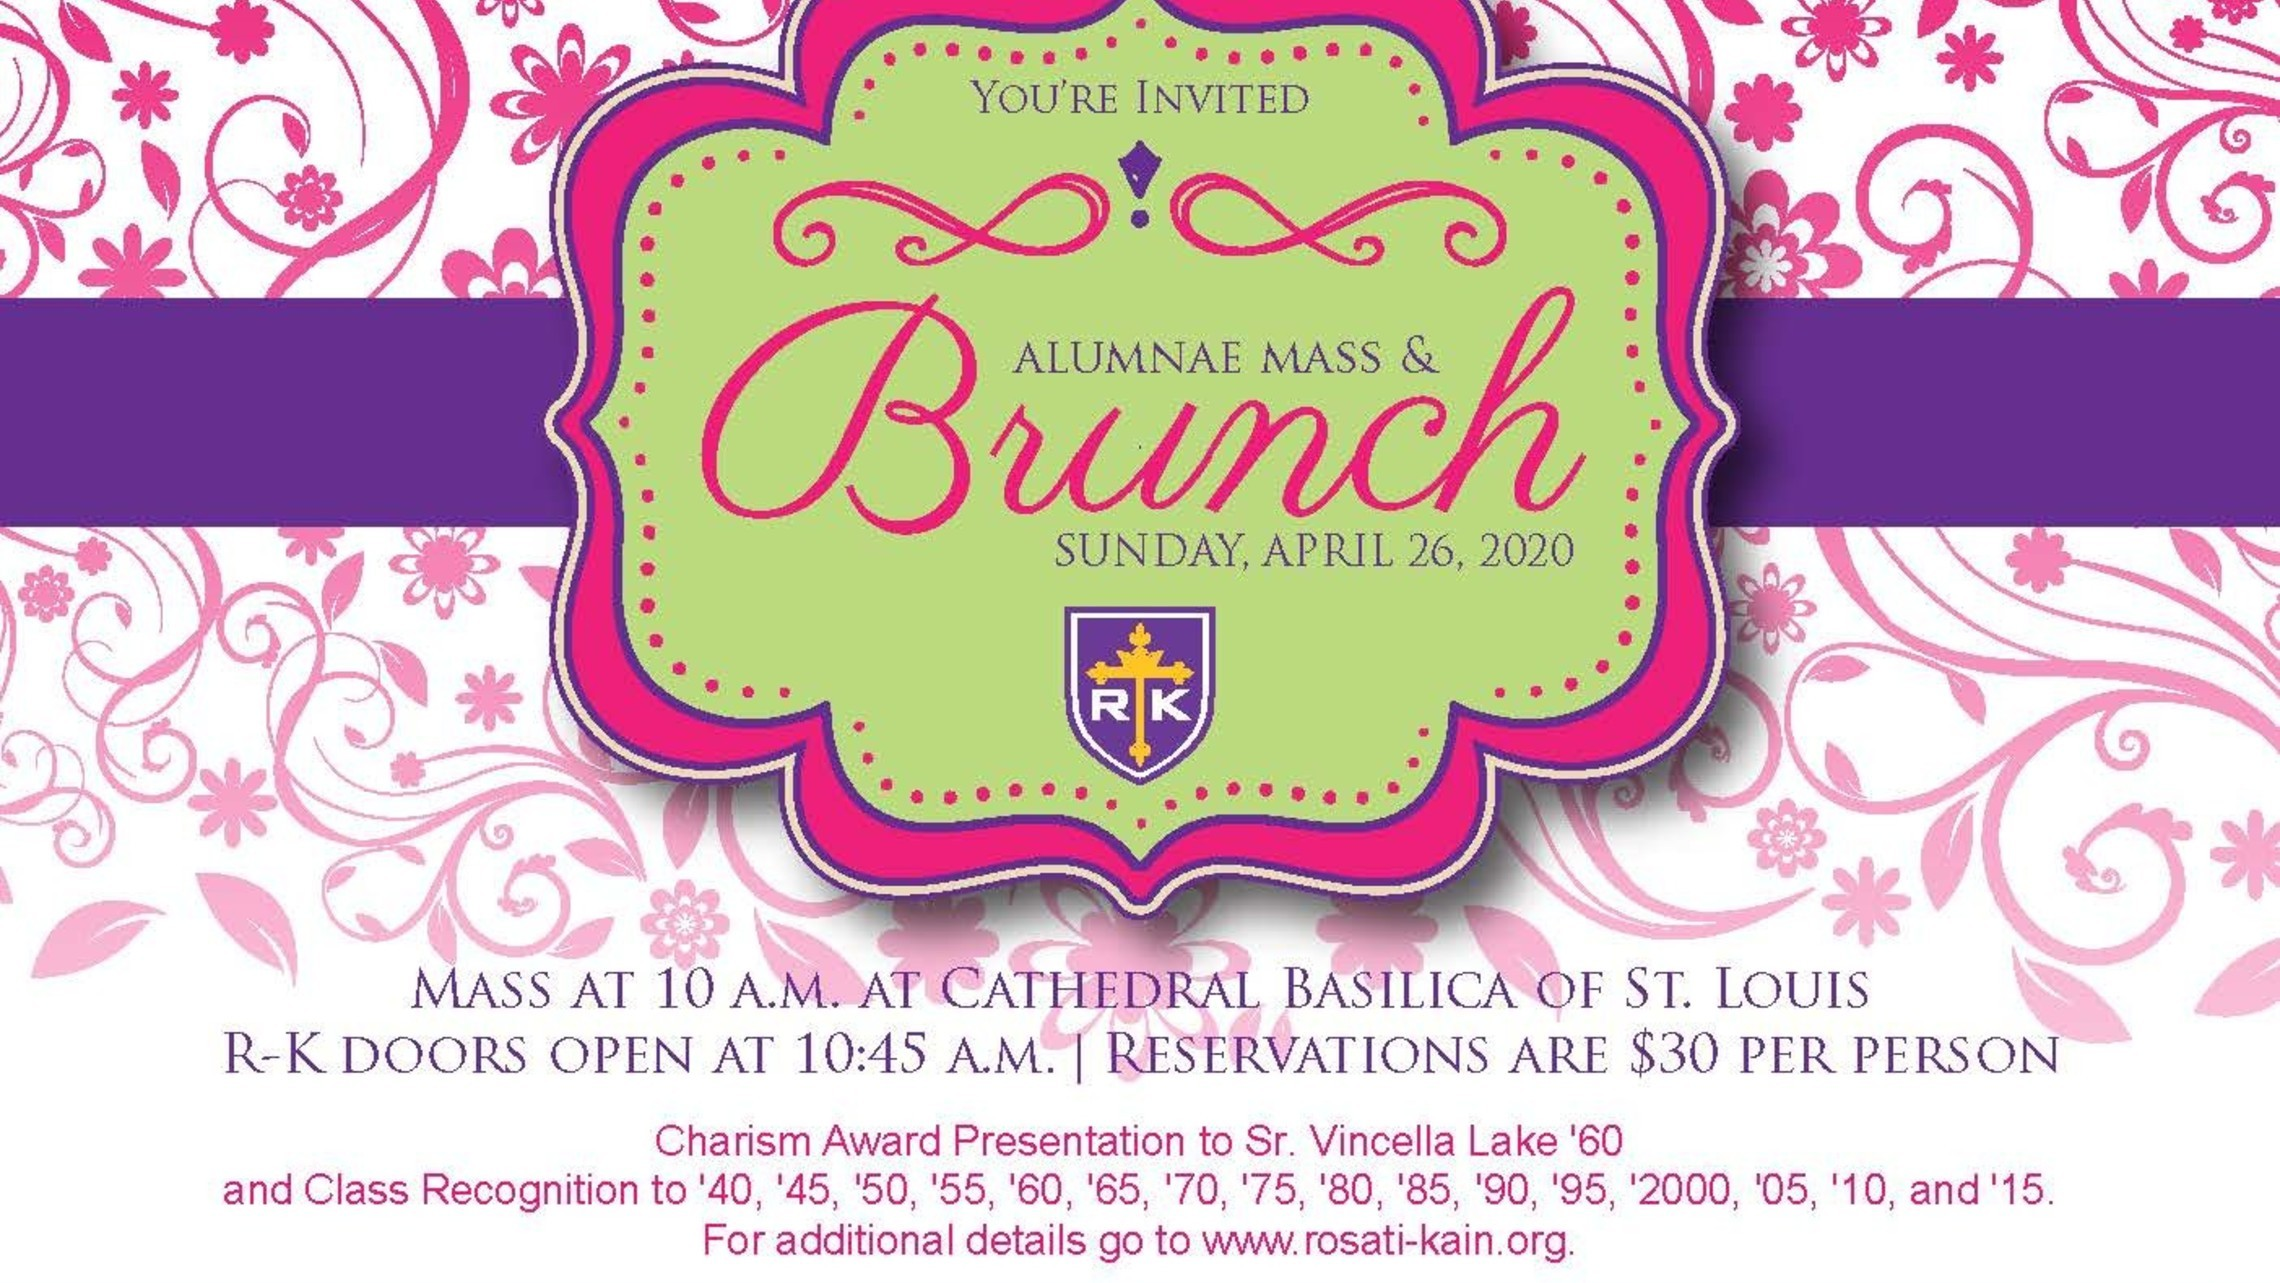 Alumna Mass Brunch